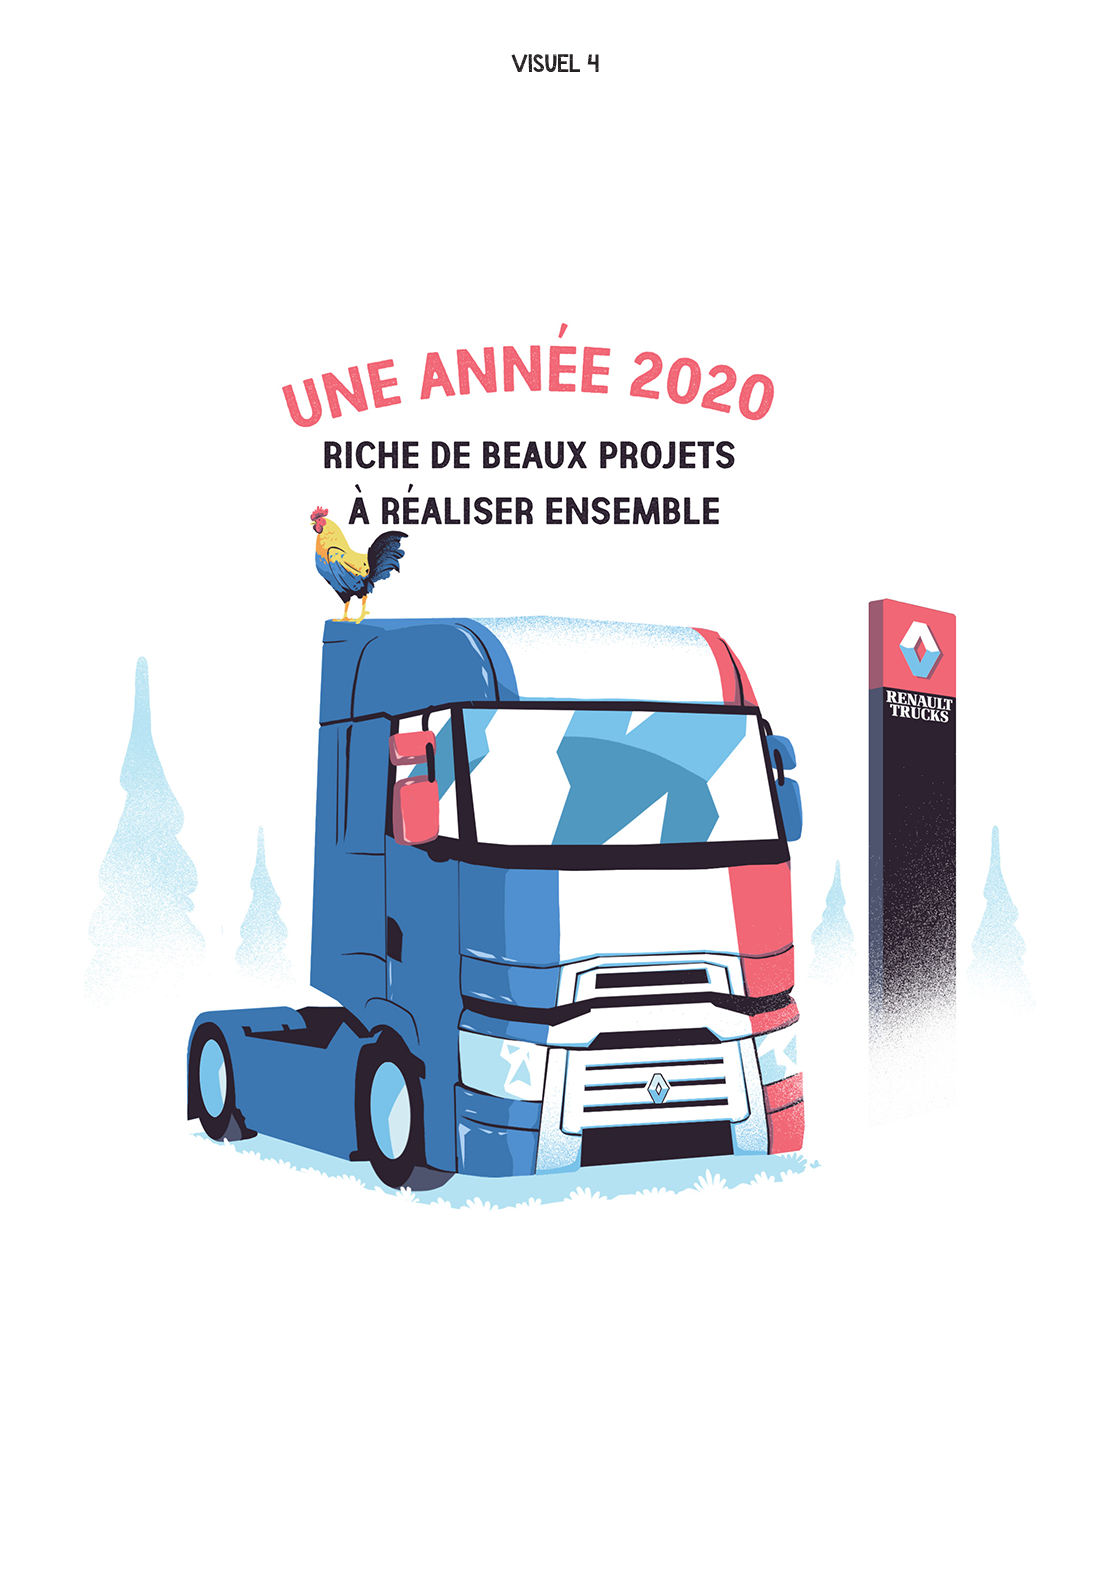 RENAULT TRUCKS-illustration 4